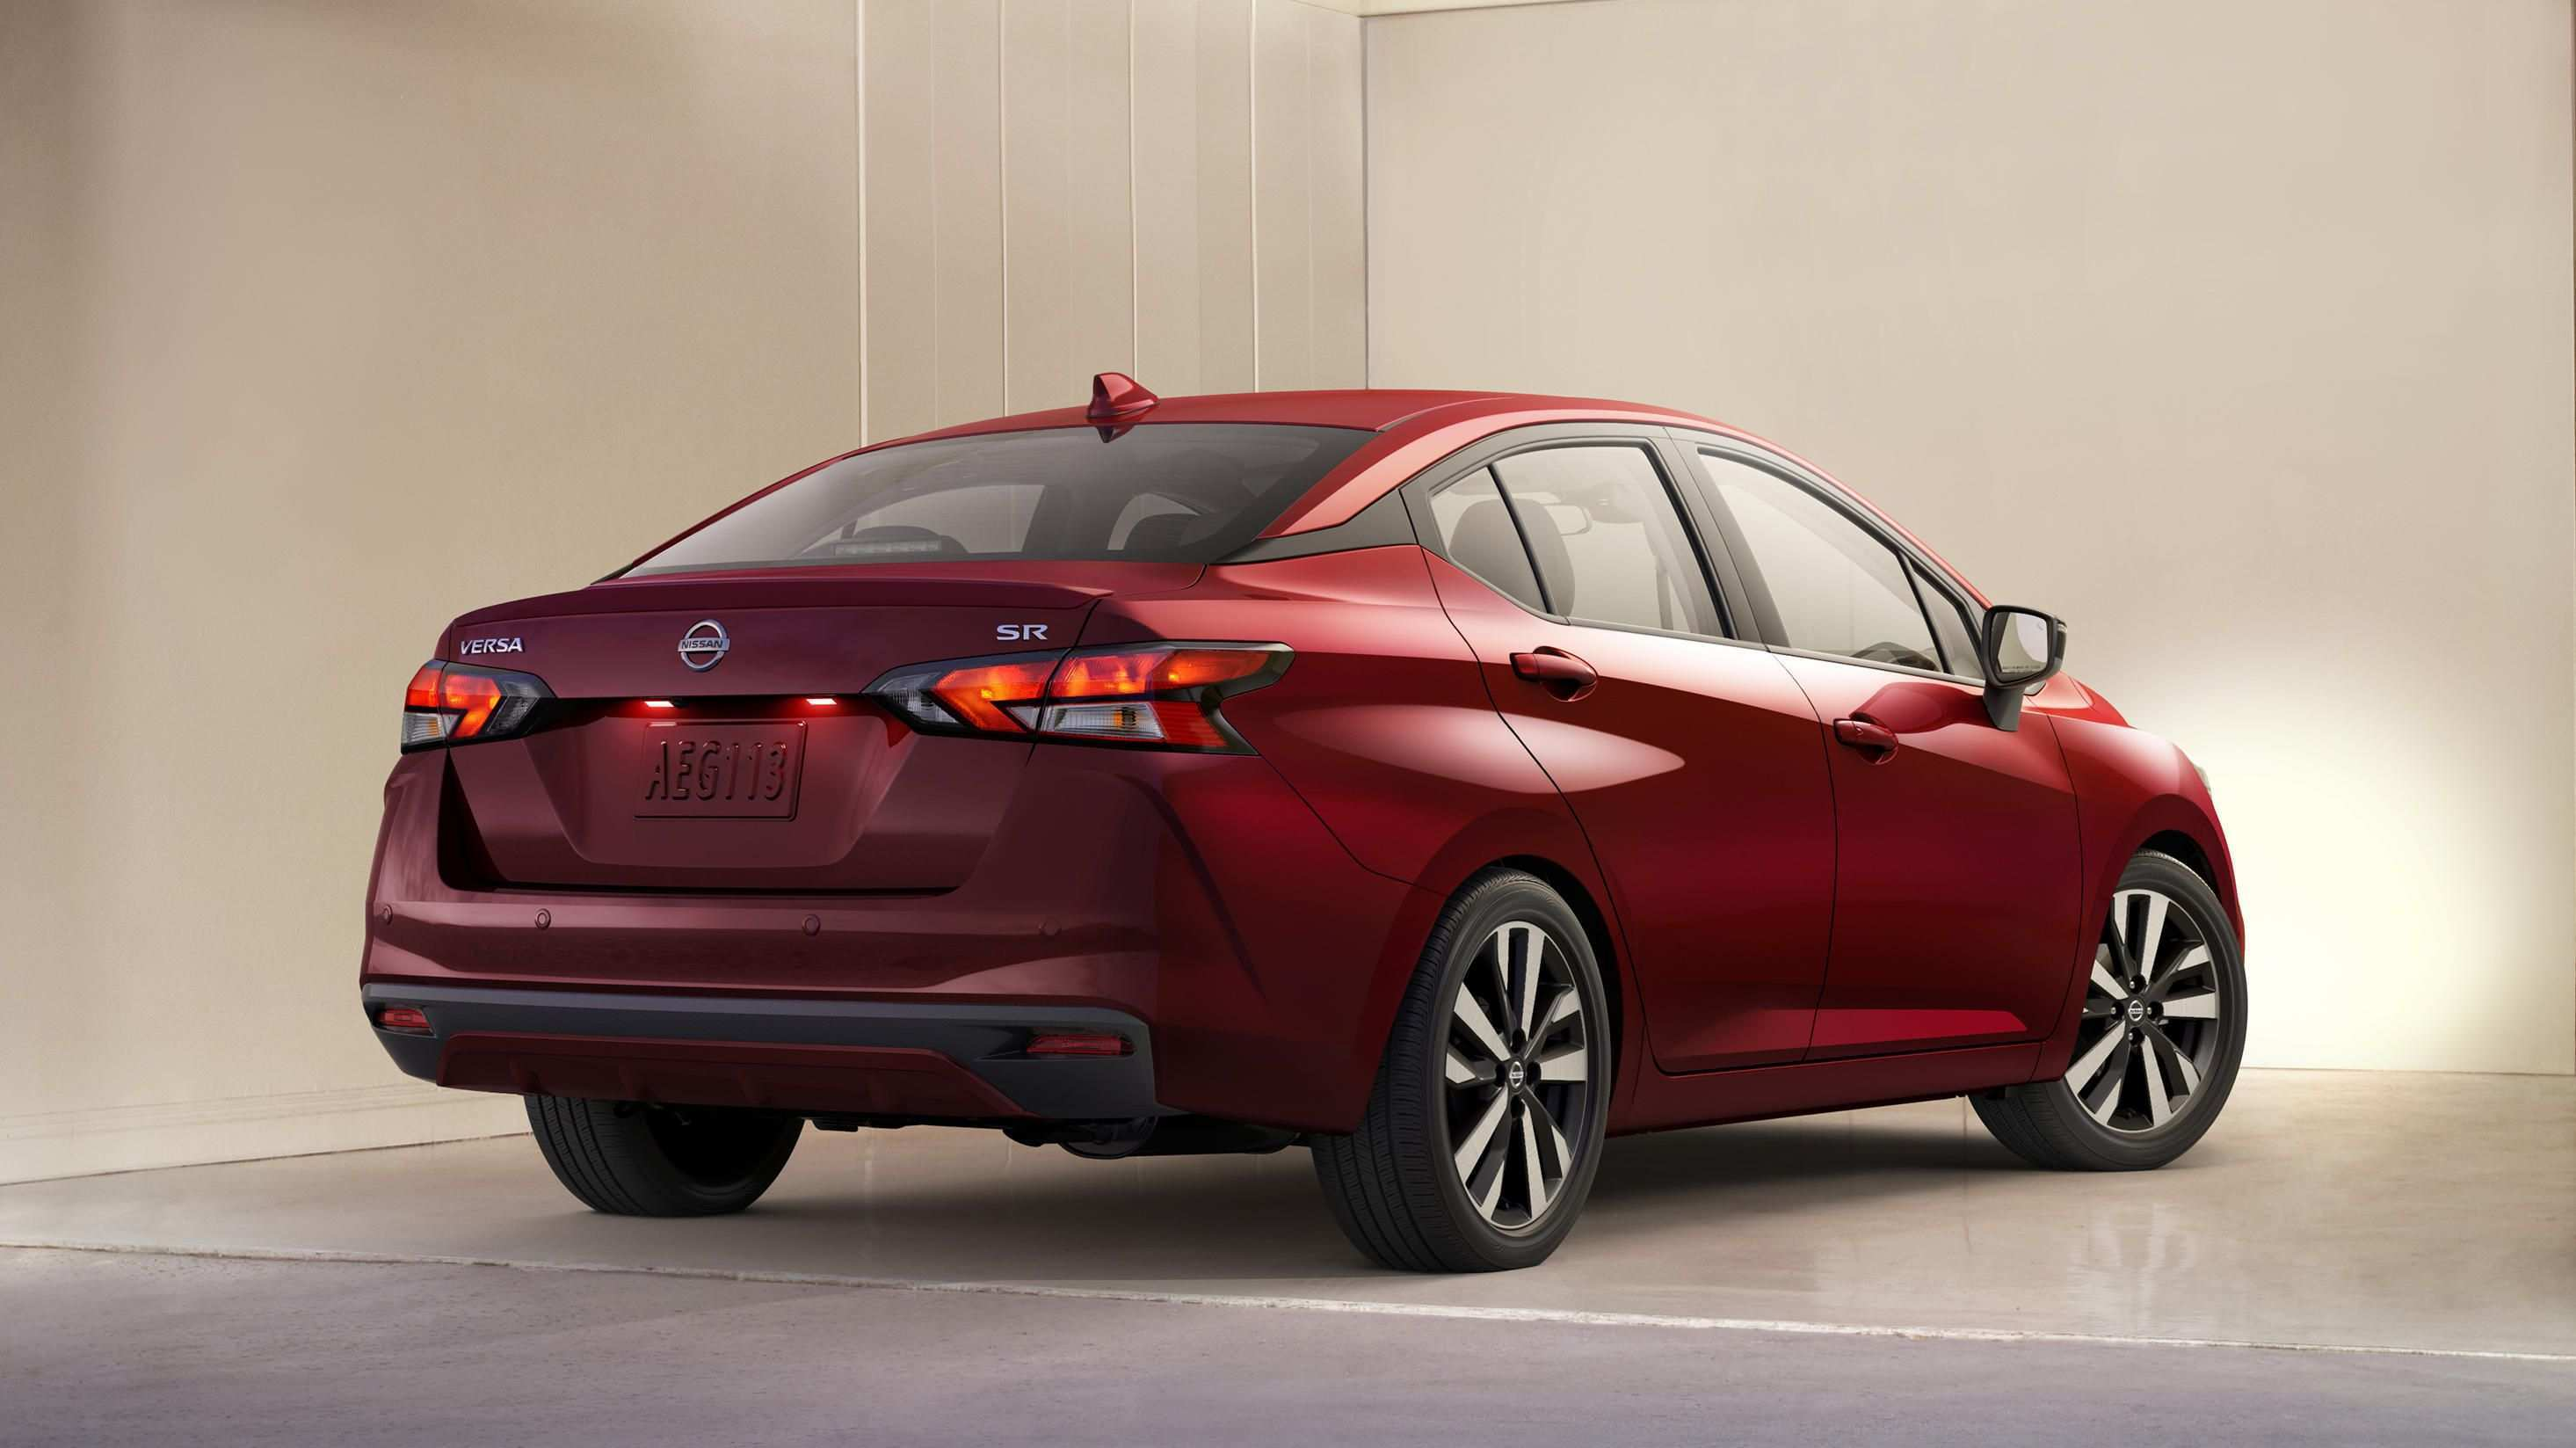 58 New Nissan Versa Sedan 2020 Price Design And Review